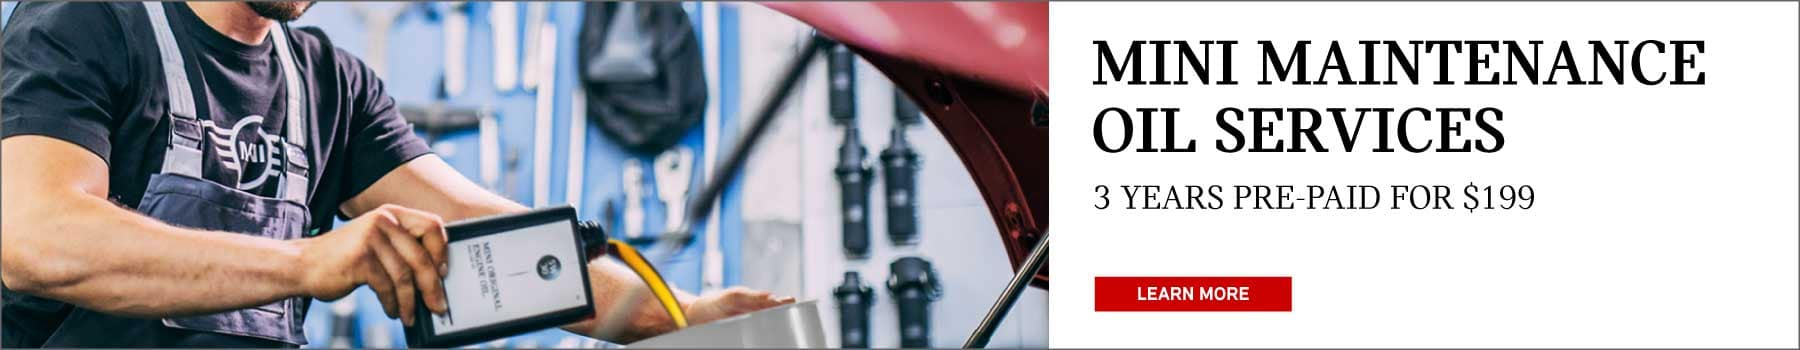 MINI Maintenance Oil Services. 3 years pre-paid for $199. Click to learn more. Picture shows a MINI service advisor adding oil to a MINI vehicle in a garage.